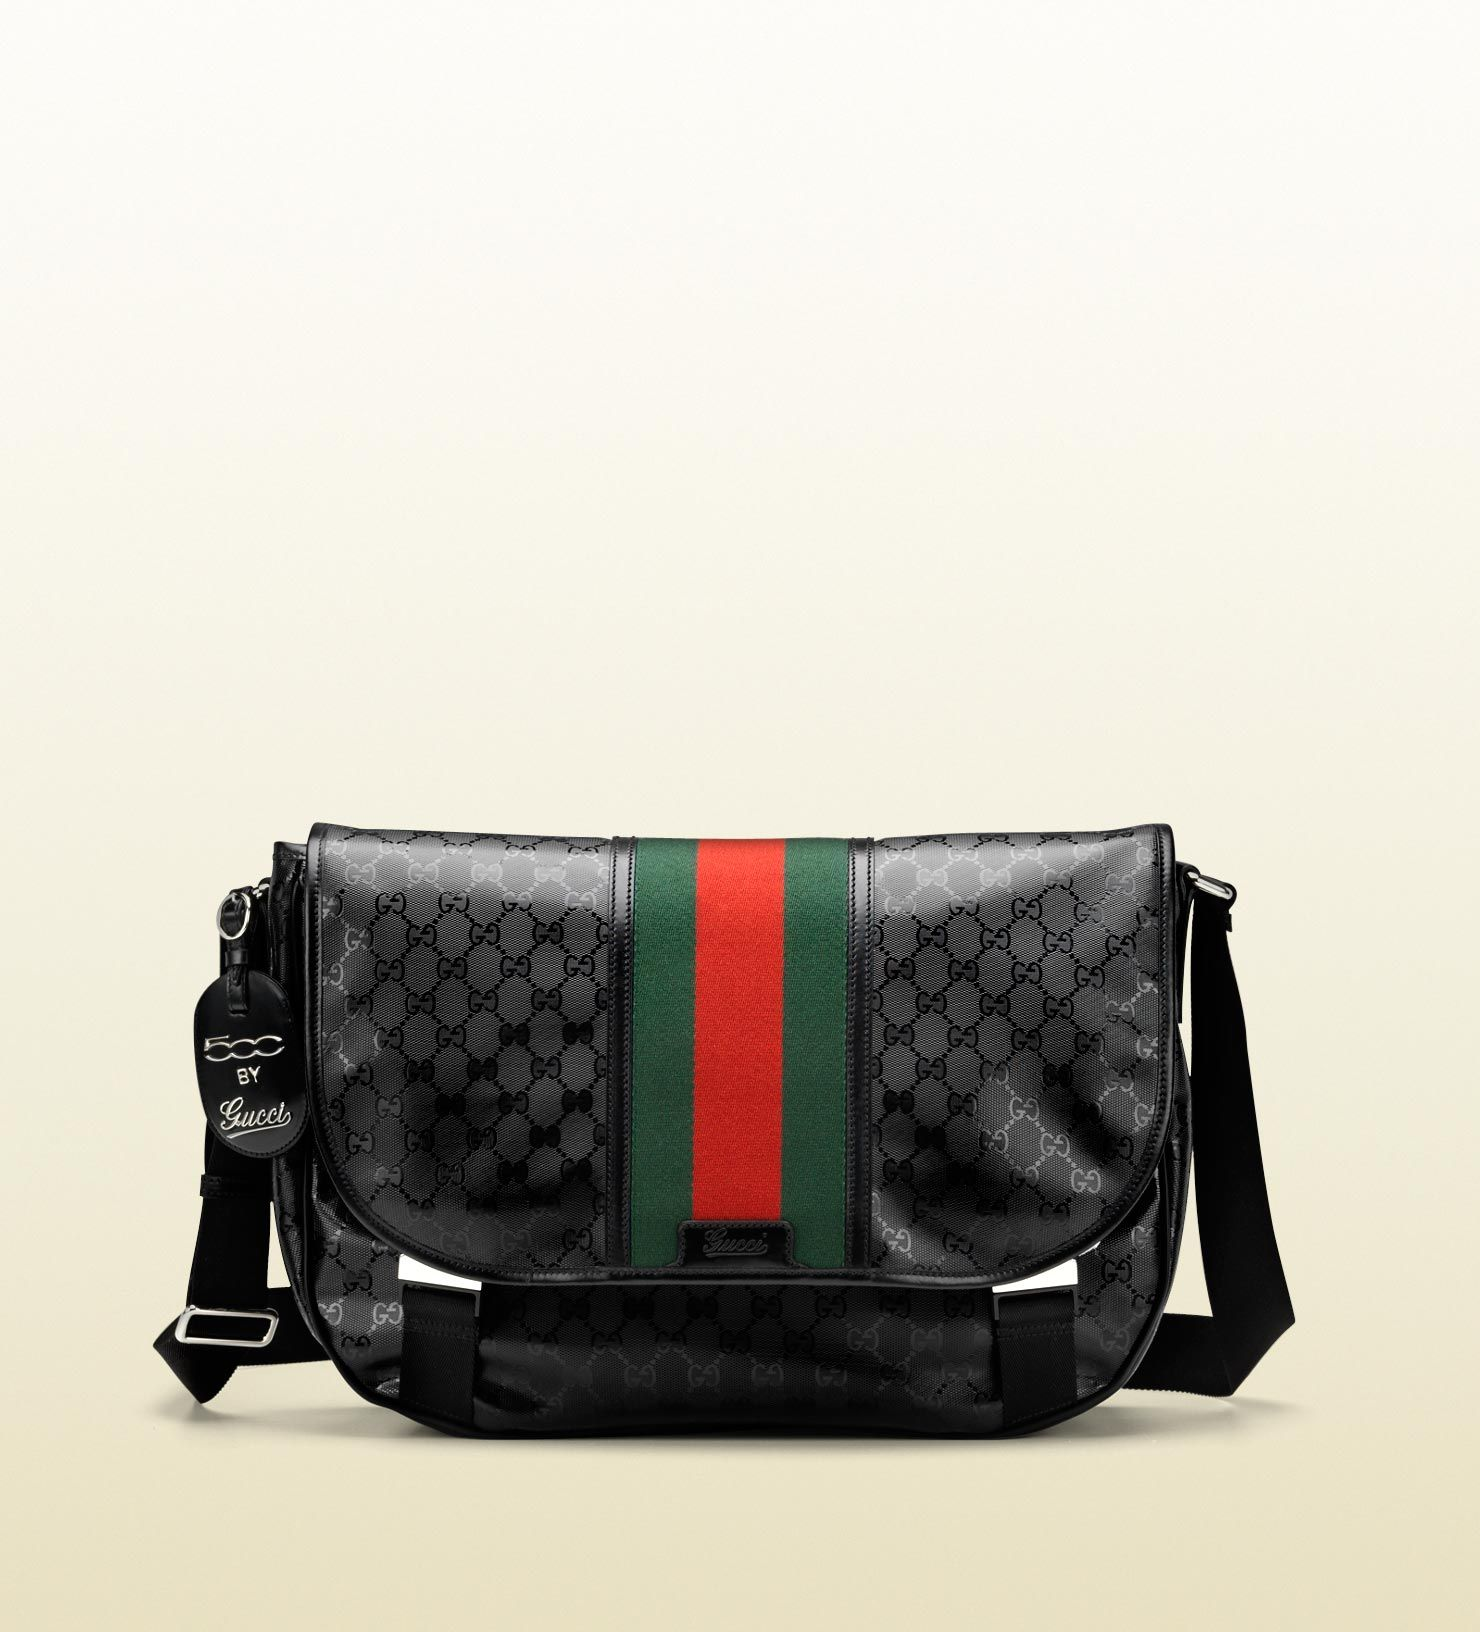 9746de98cdbd black GG imprimé with green/red/green signature web and black leather trim  $1325